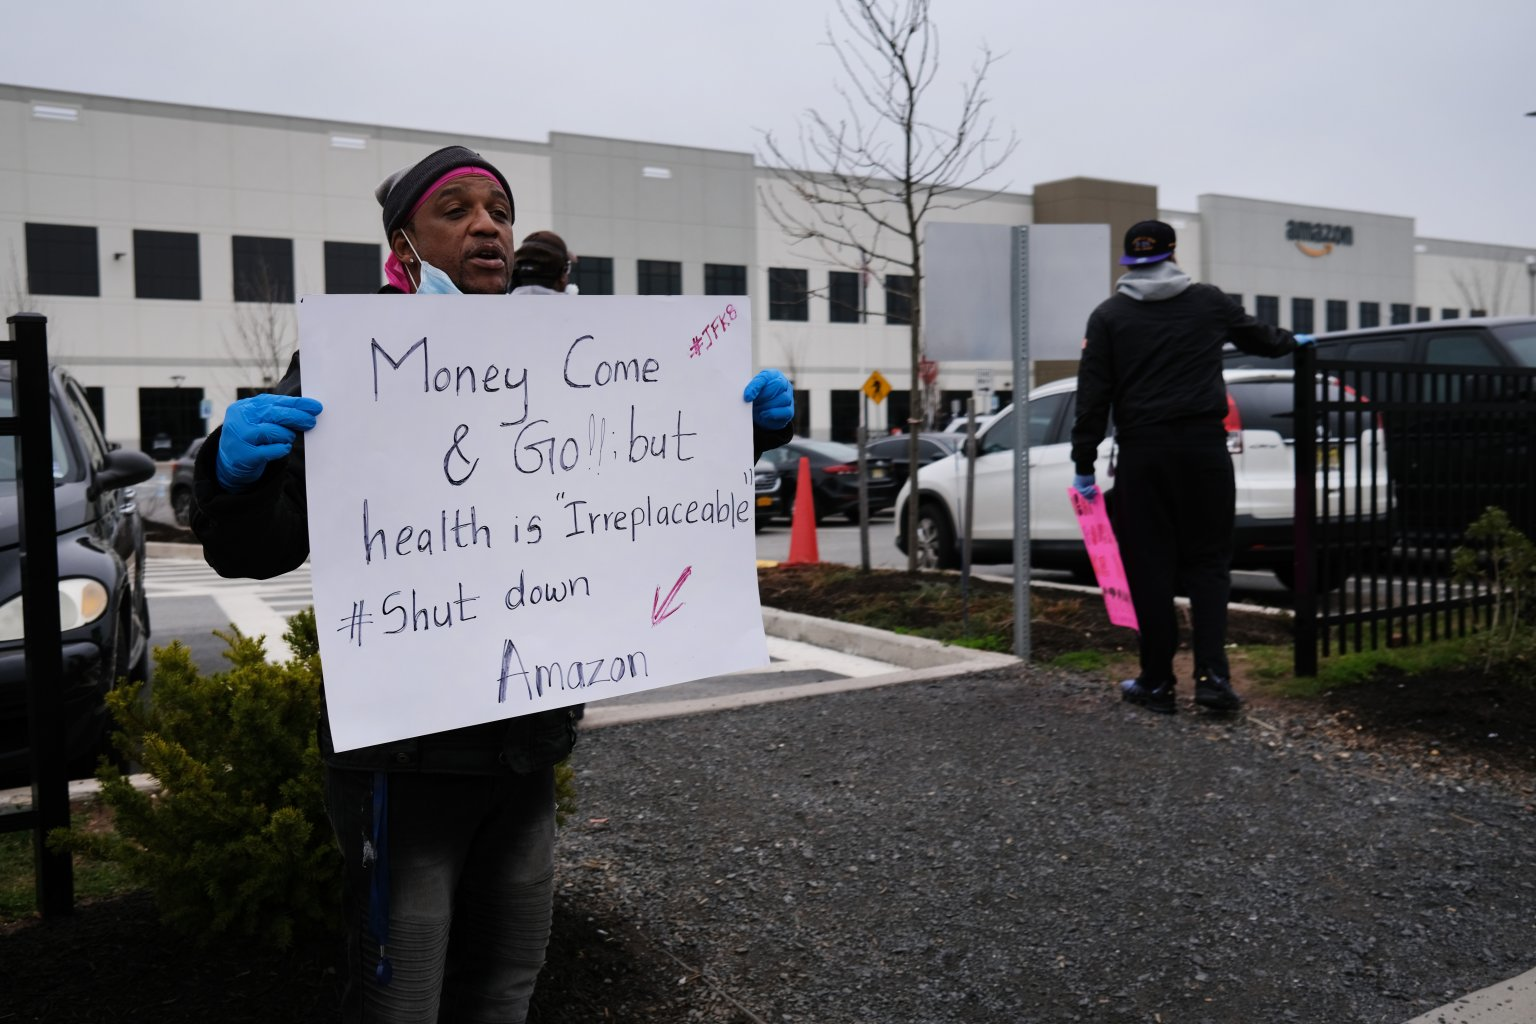 Amazon employees hold a protest and walkout over conditions at the company's Staten Island distribution facility on March 30, 2020 in New York City. Workers at many facilities across the country have protested conditions, as employees have tested positive for the coronavirus. | Spencer Platt/Getty Images.